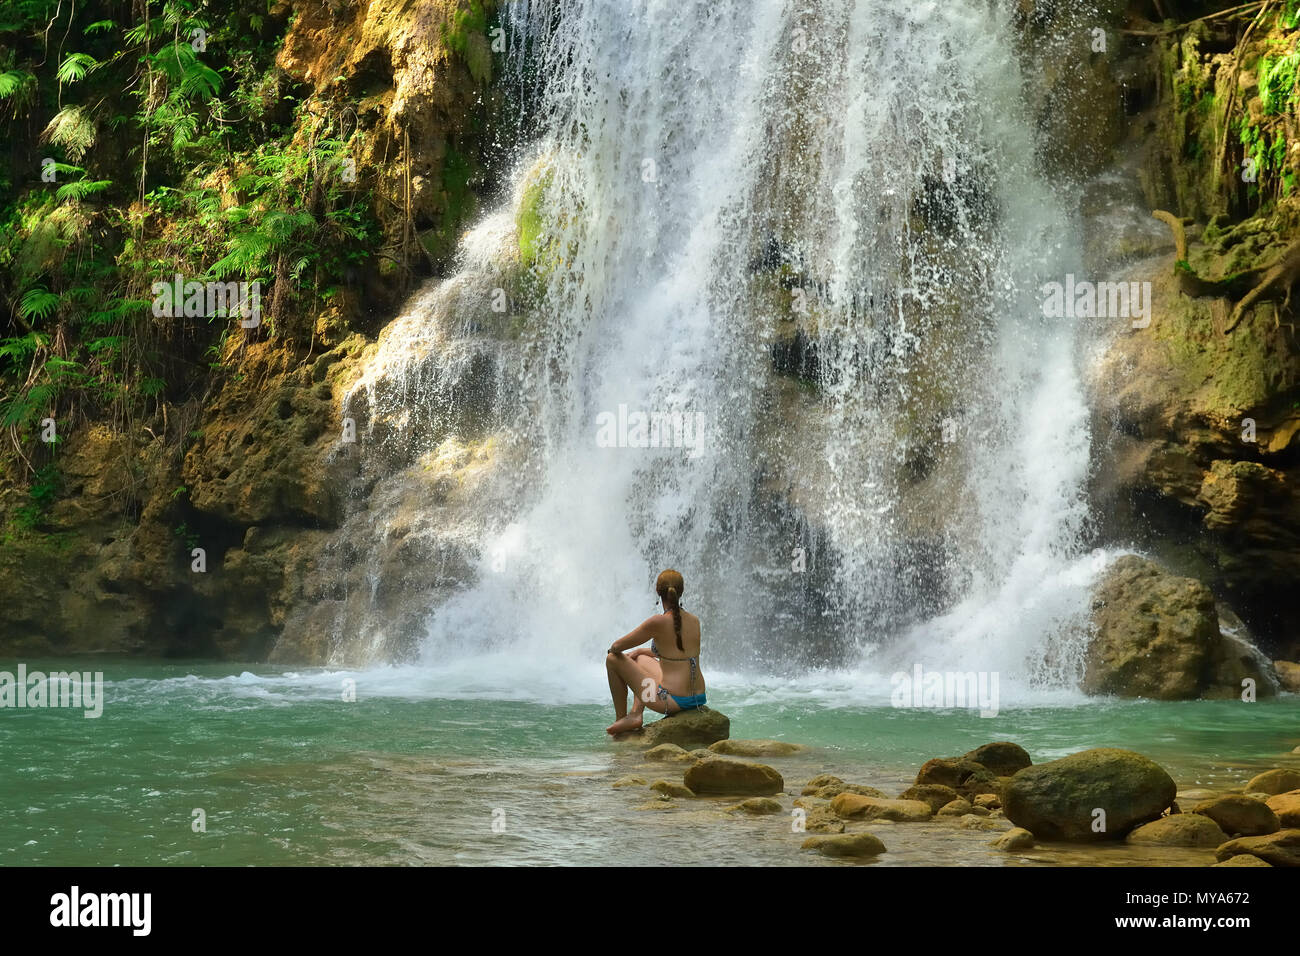 Tourist swimming in the Salto el Limon the waterfall located in the centre of the tropical forest, Samana, Dominikana Republic. - Stock Image